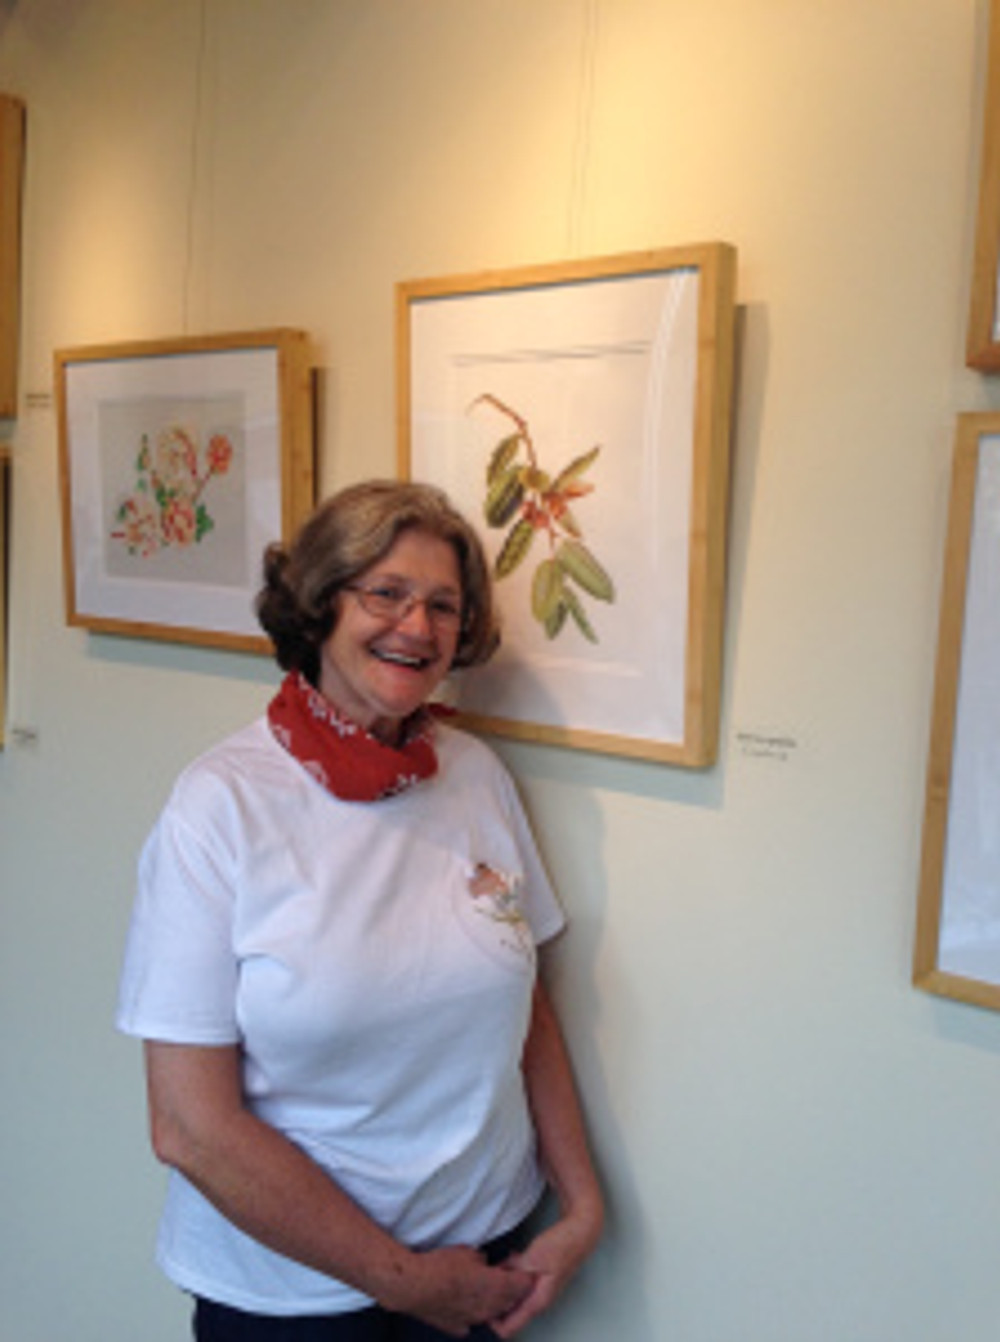 Estelle DeRidder with her artwork in the exhibition. Photo by Clara Josephs, © 2015, all rights reserved.